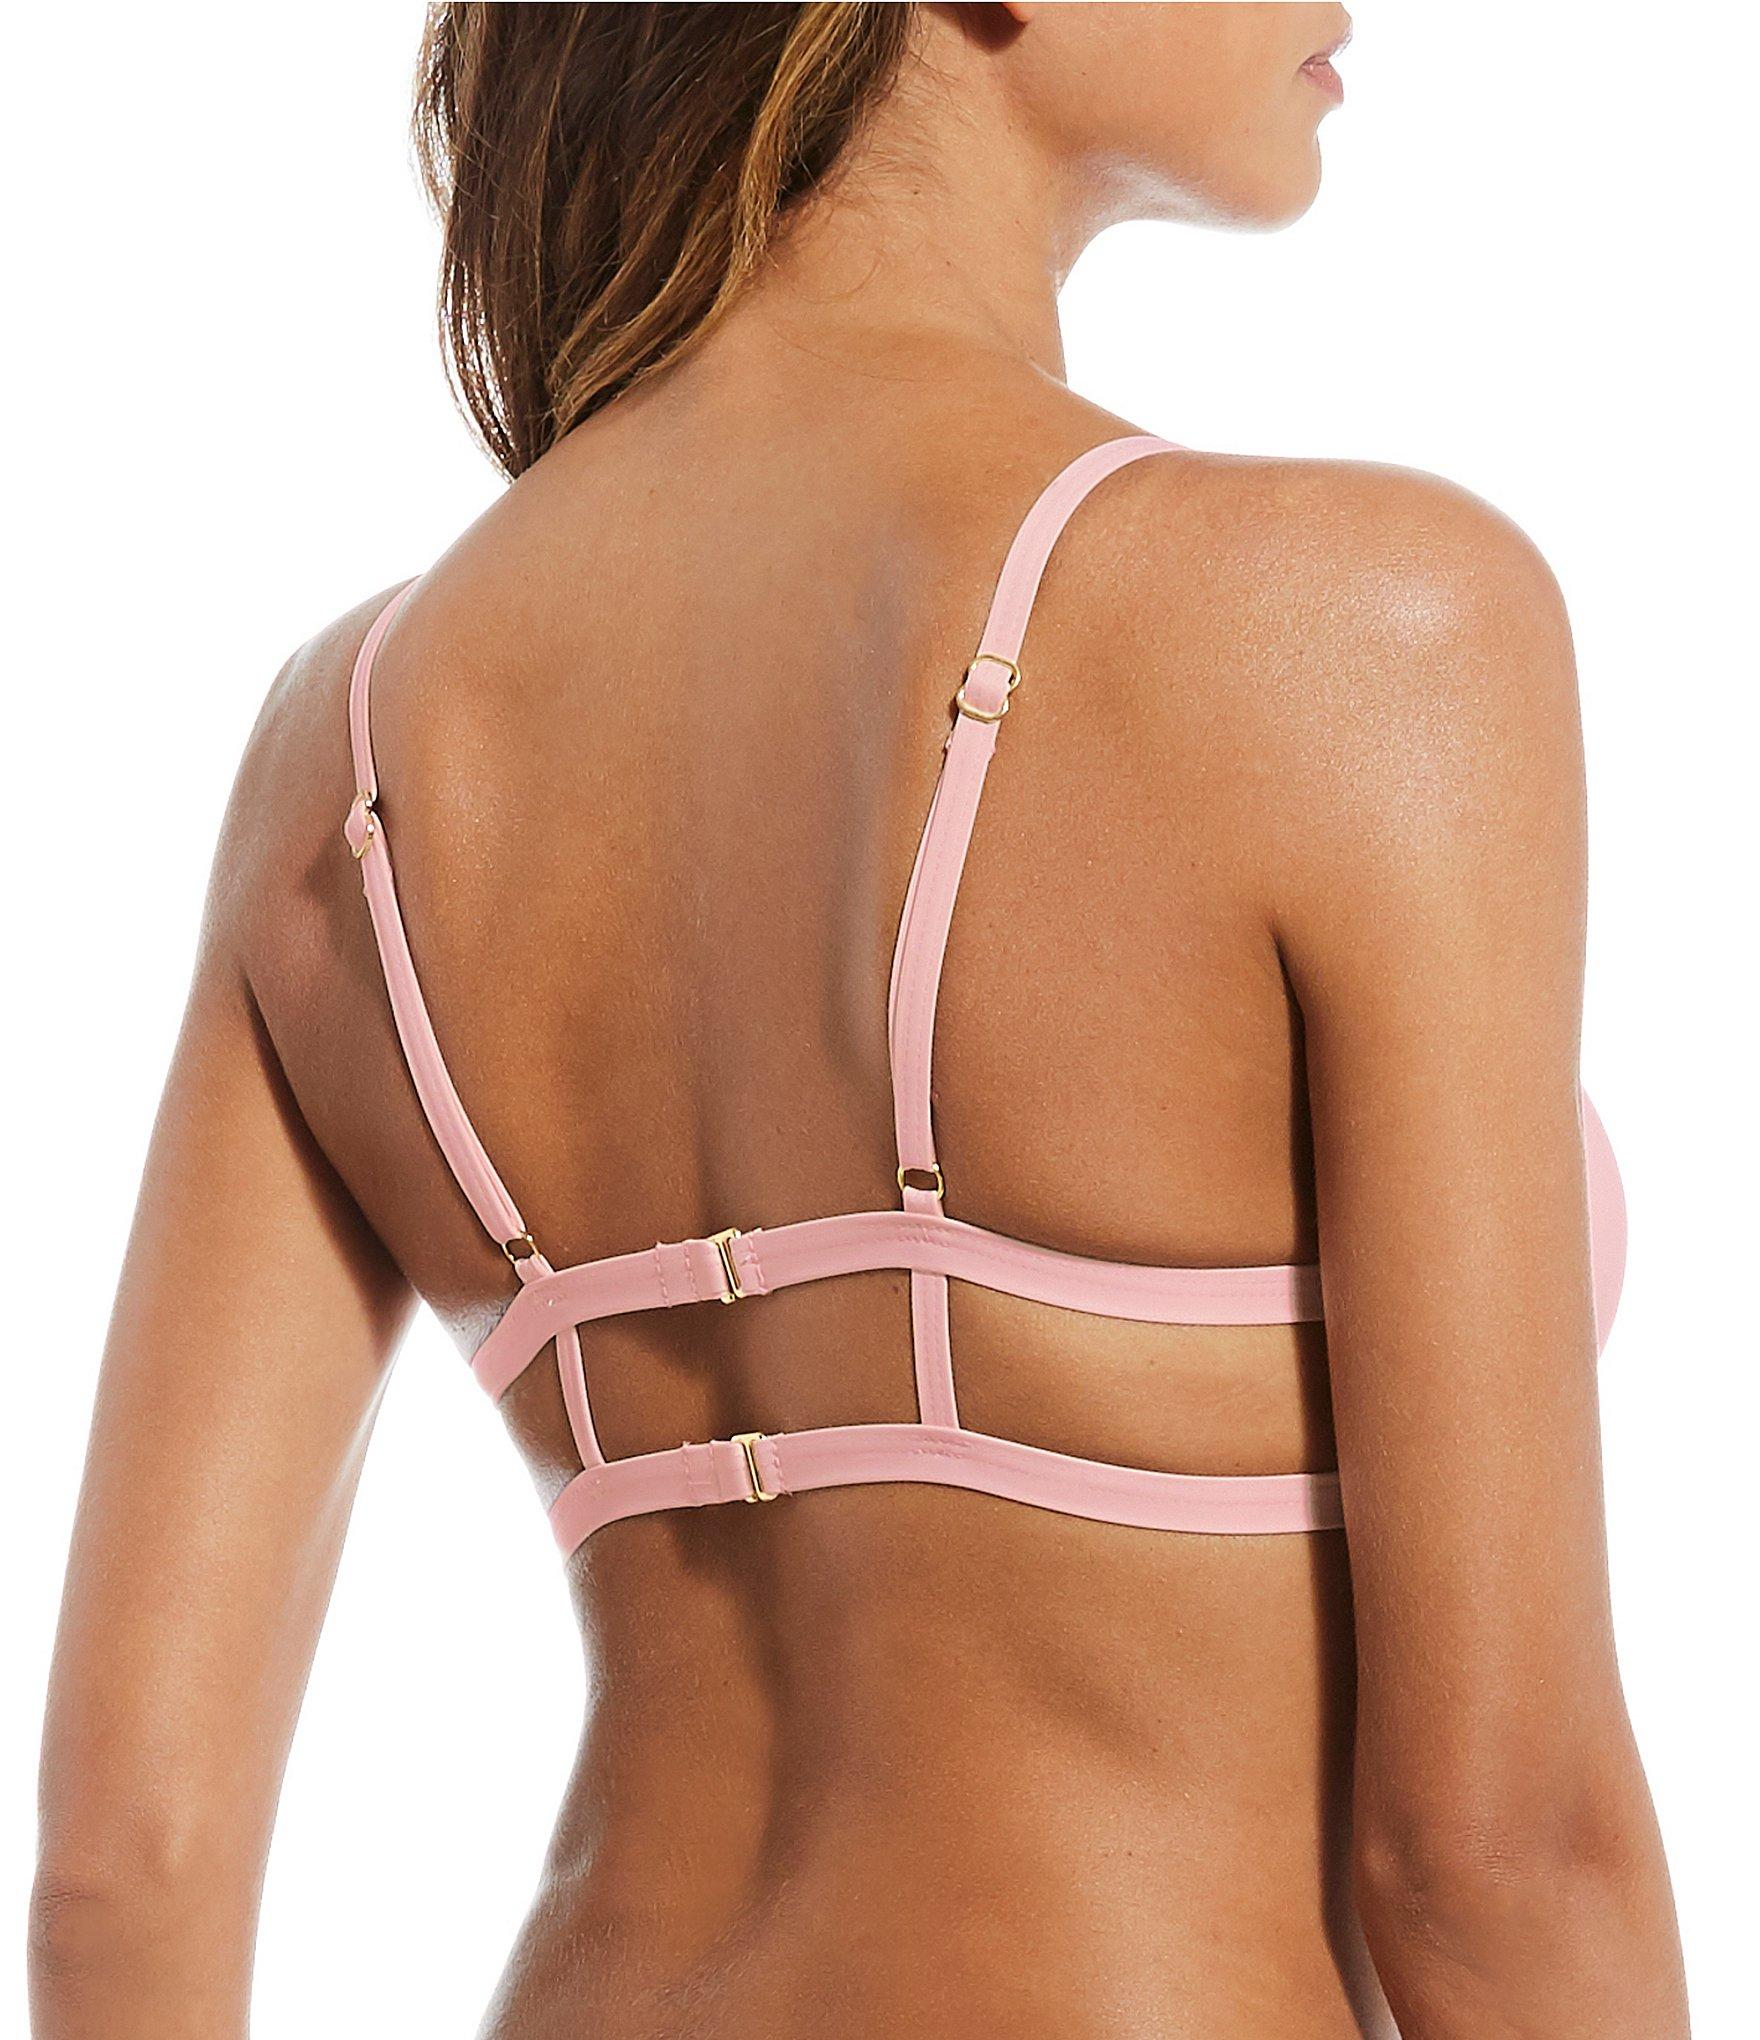 53924acfd3 Gianni Bini - Multicolor Solid Angel Strap Back Bralette Swimsuit Top -  Lyst. View fullscreen